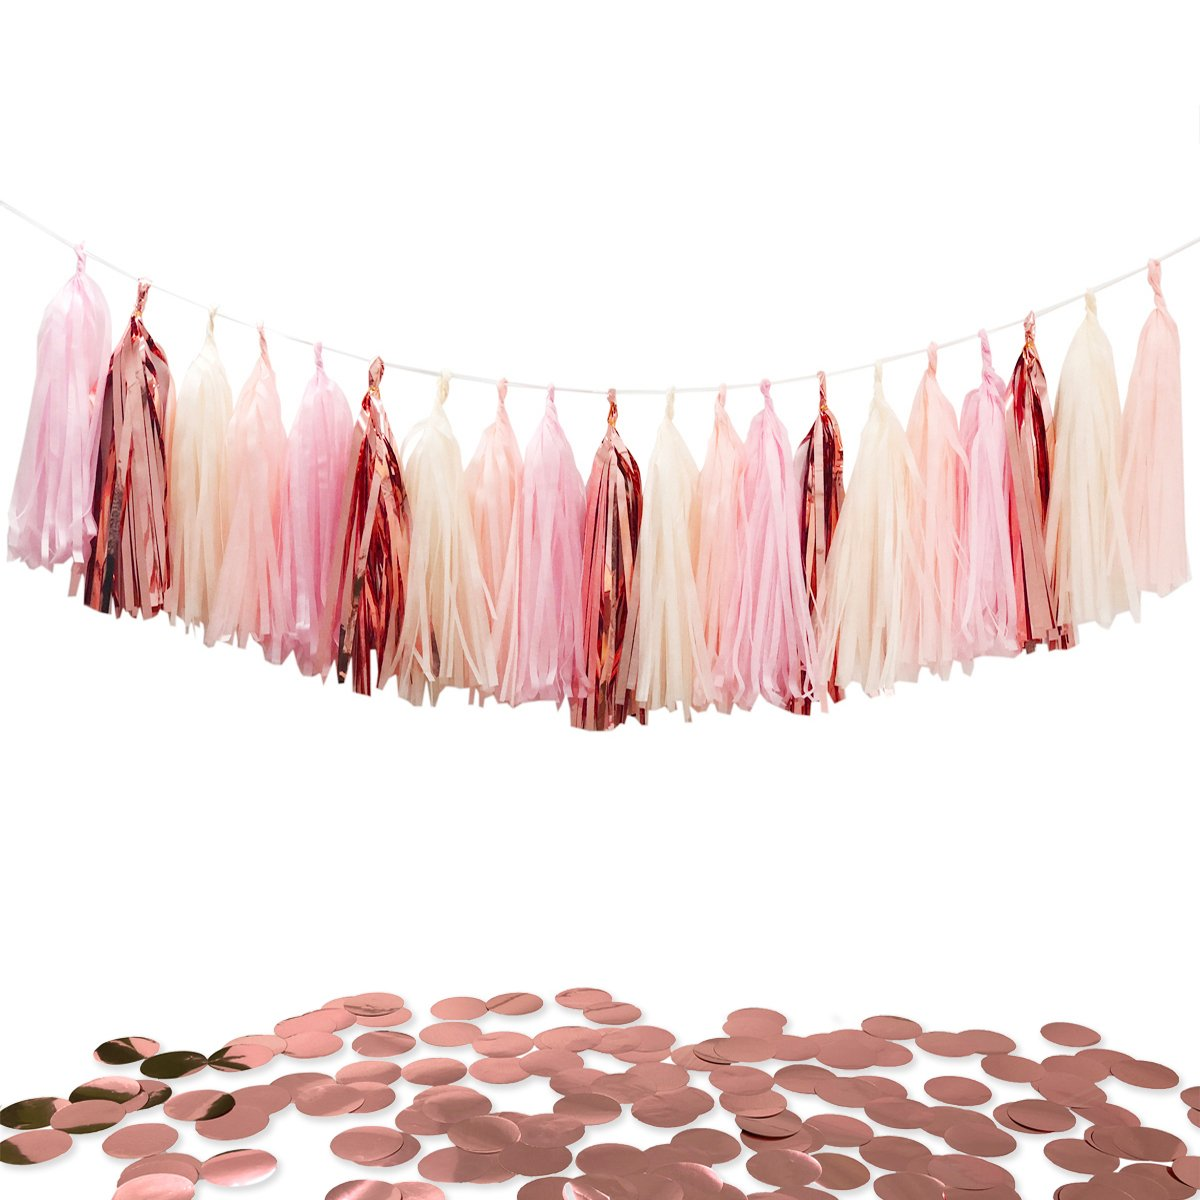 Tissue Paper Tassels Party Garland, 20pcs Rose Gold Foil Pink Blush Yellow Tassel 10g Rose Gold Confetti Gift for Baby Girl Showers Birthday Weddings Bridal Shower Decorations Haptda